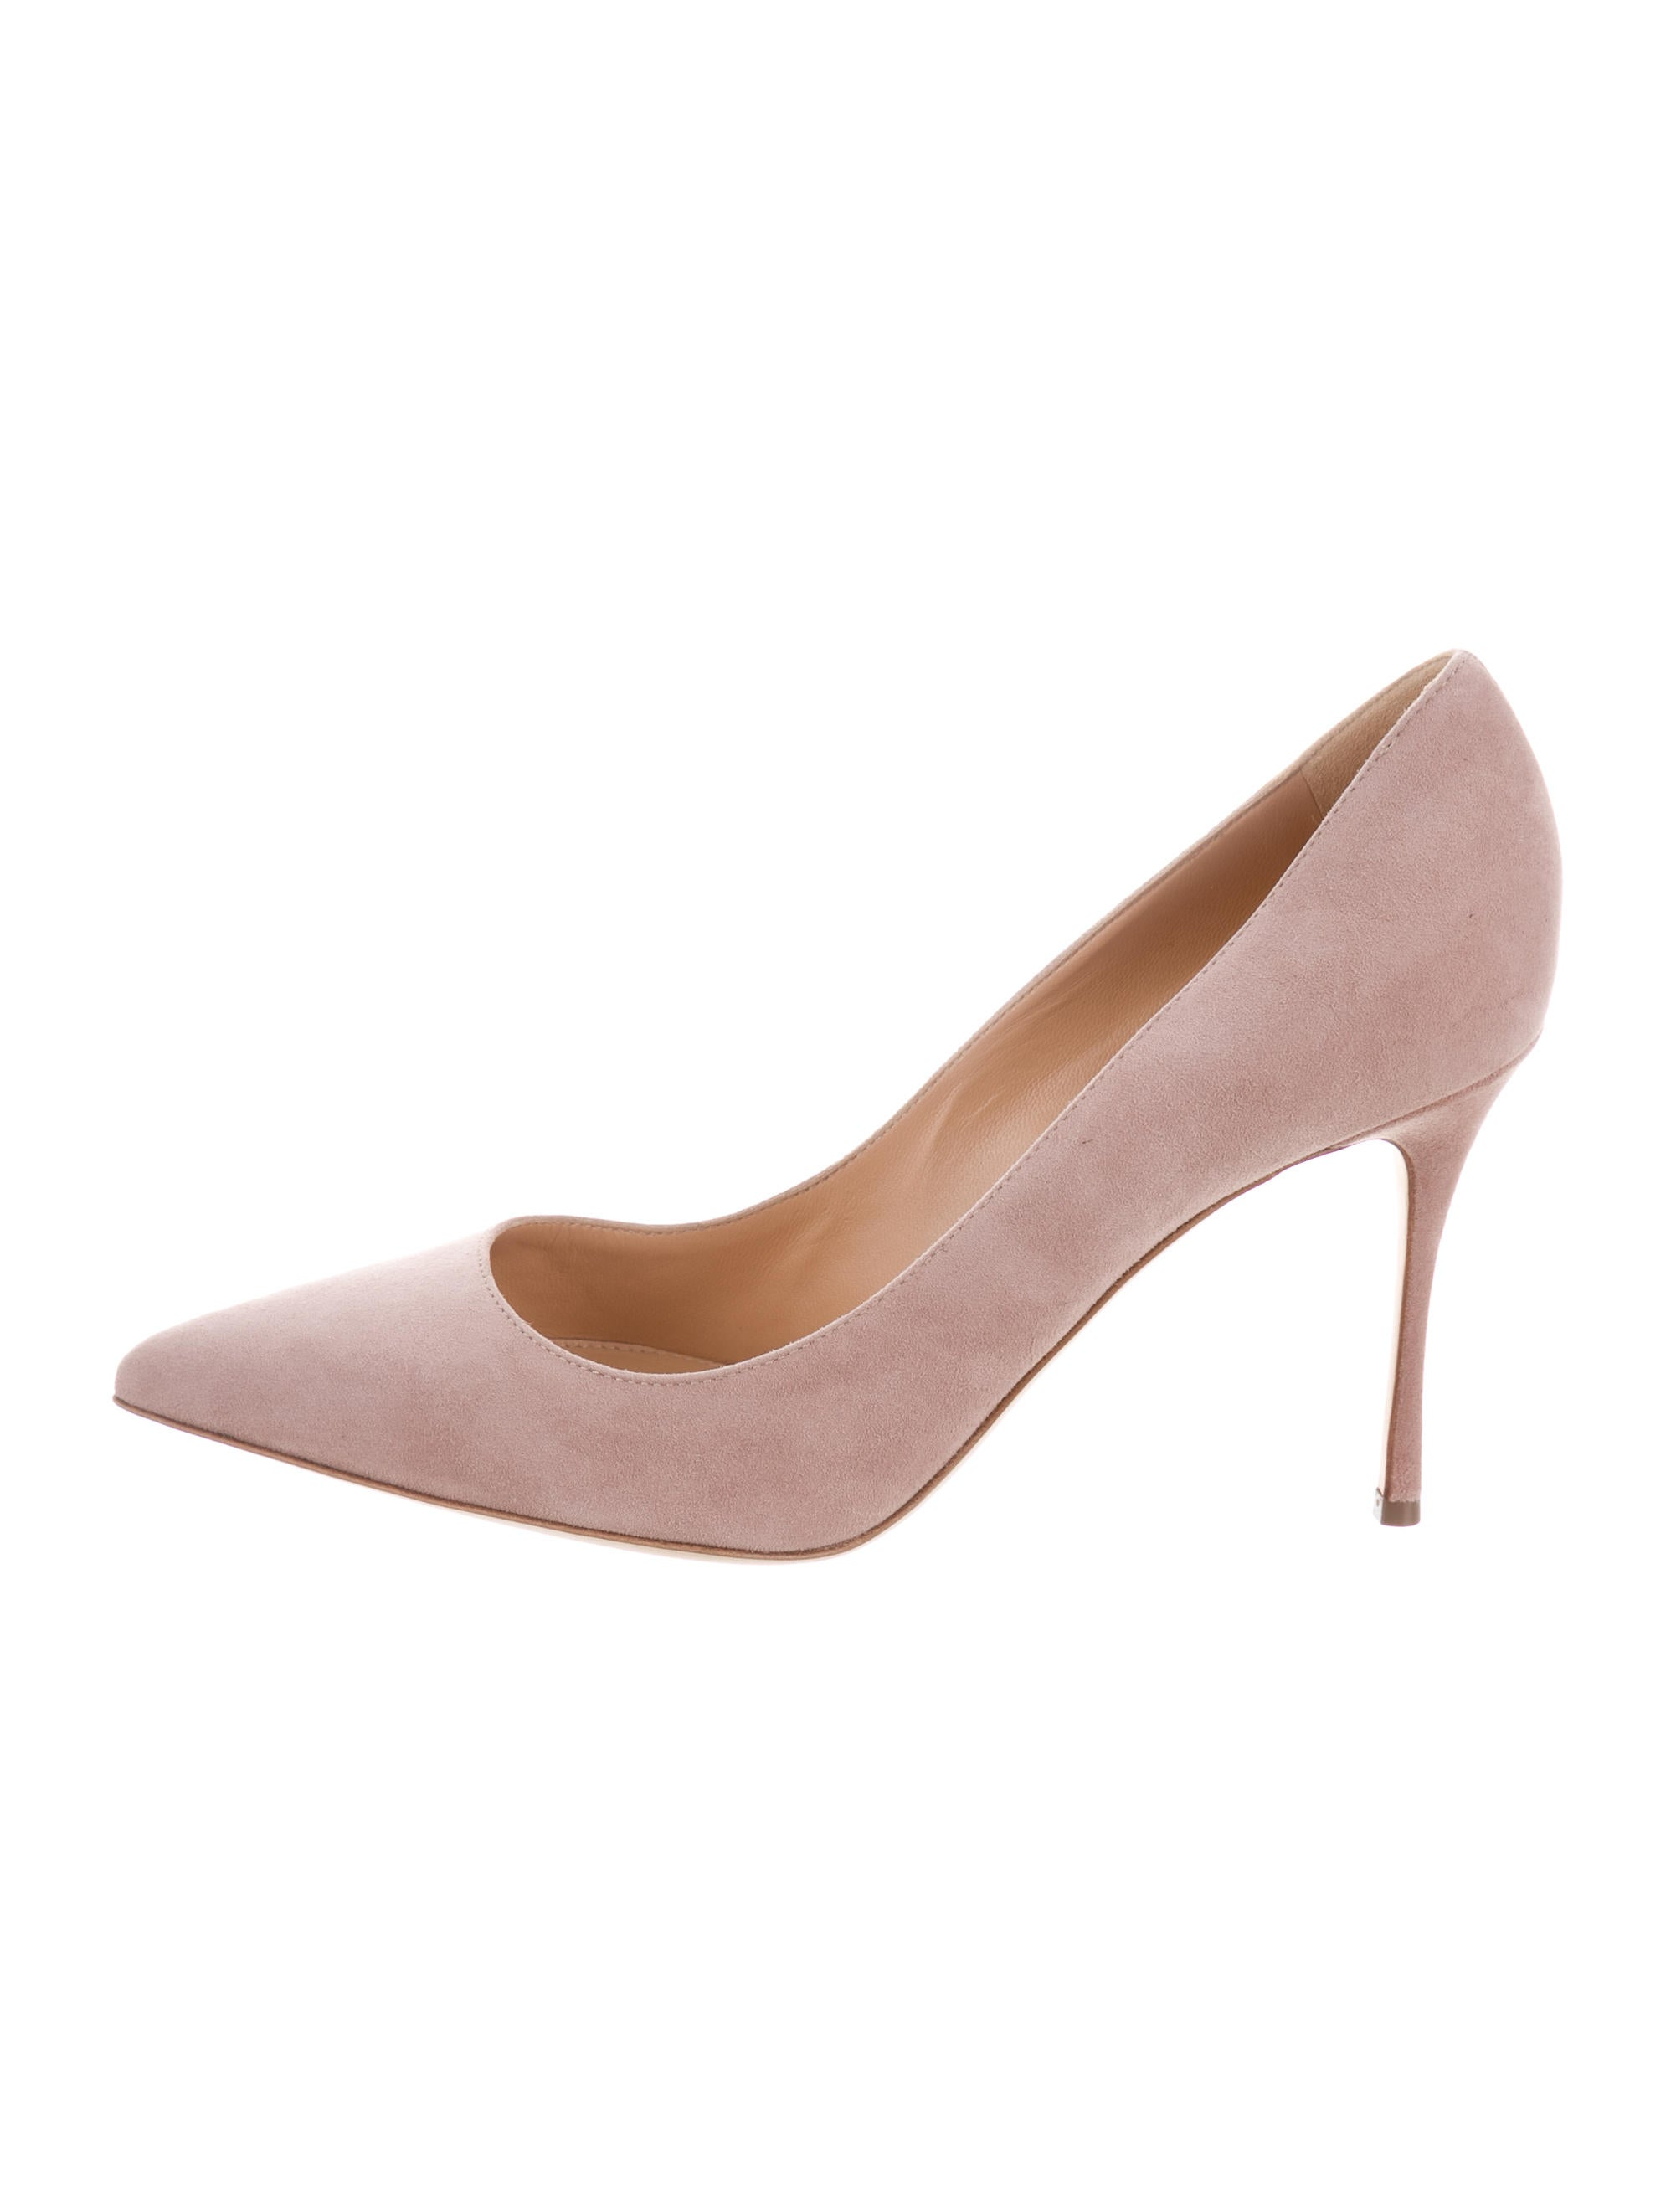 cheap sale pictures Sergio Rossi Suede Pointed-Toe Pumps w/ Tags low cost clearance best prices outlet cheapest price O40IsNYs